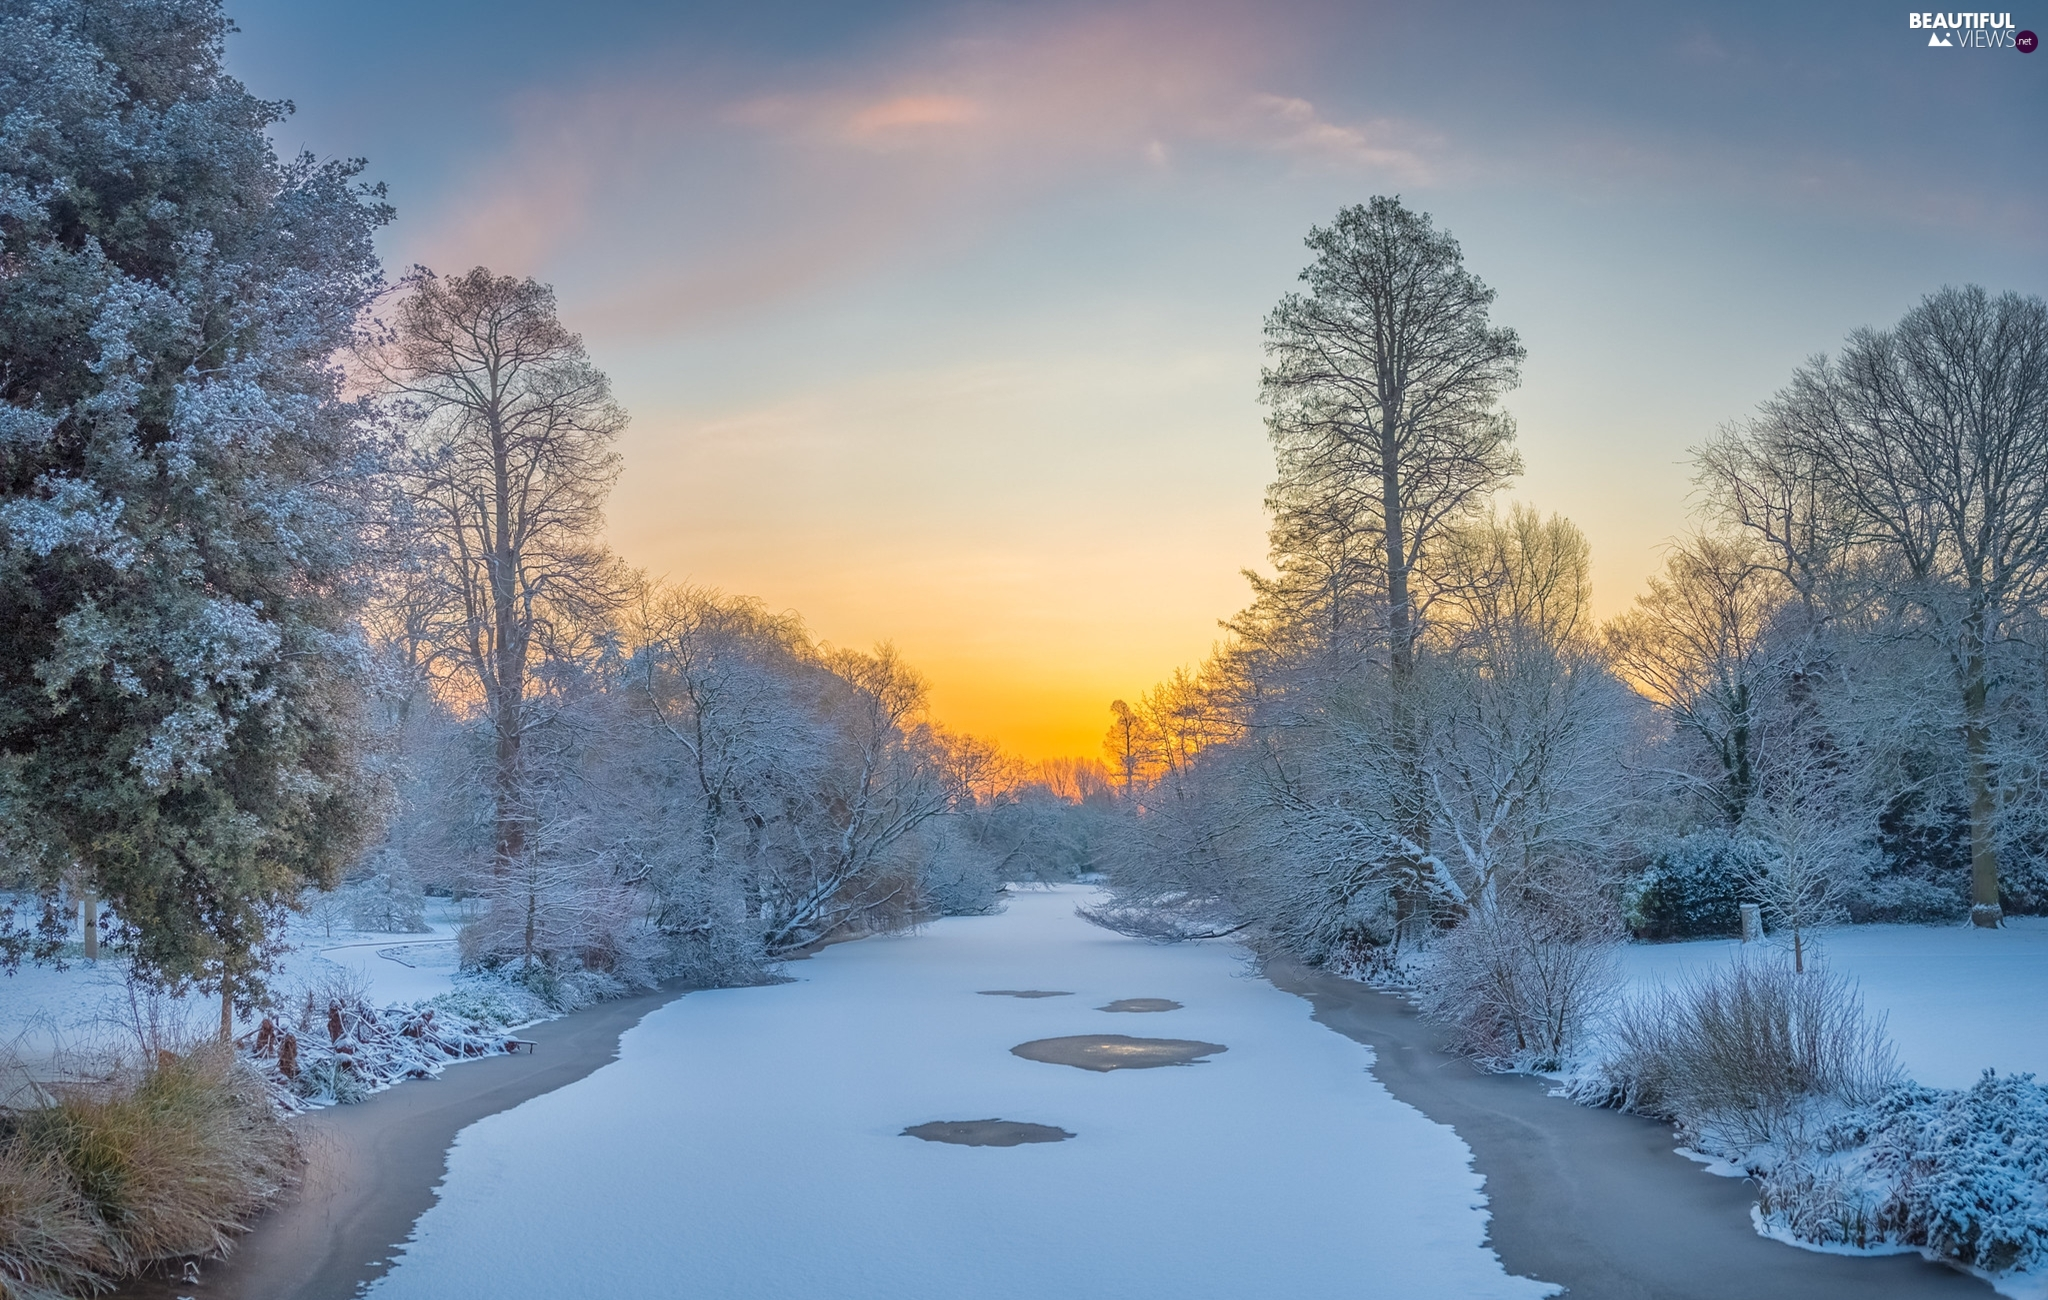 trees, winter, Bush, Sunrise, viewes, River